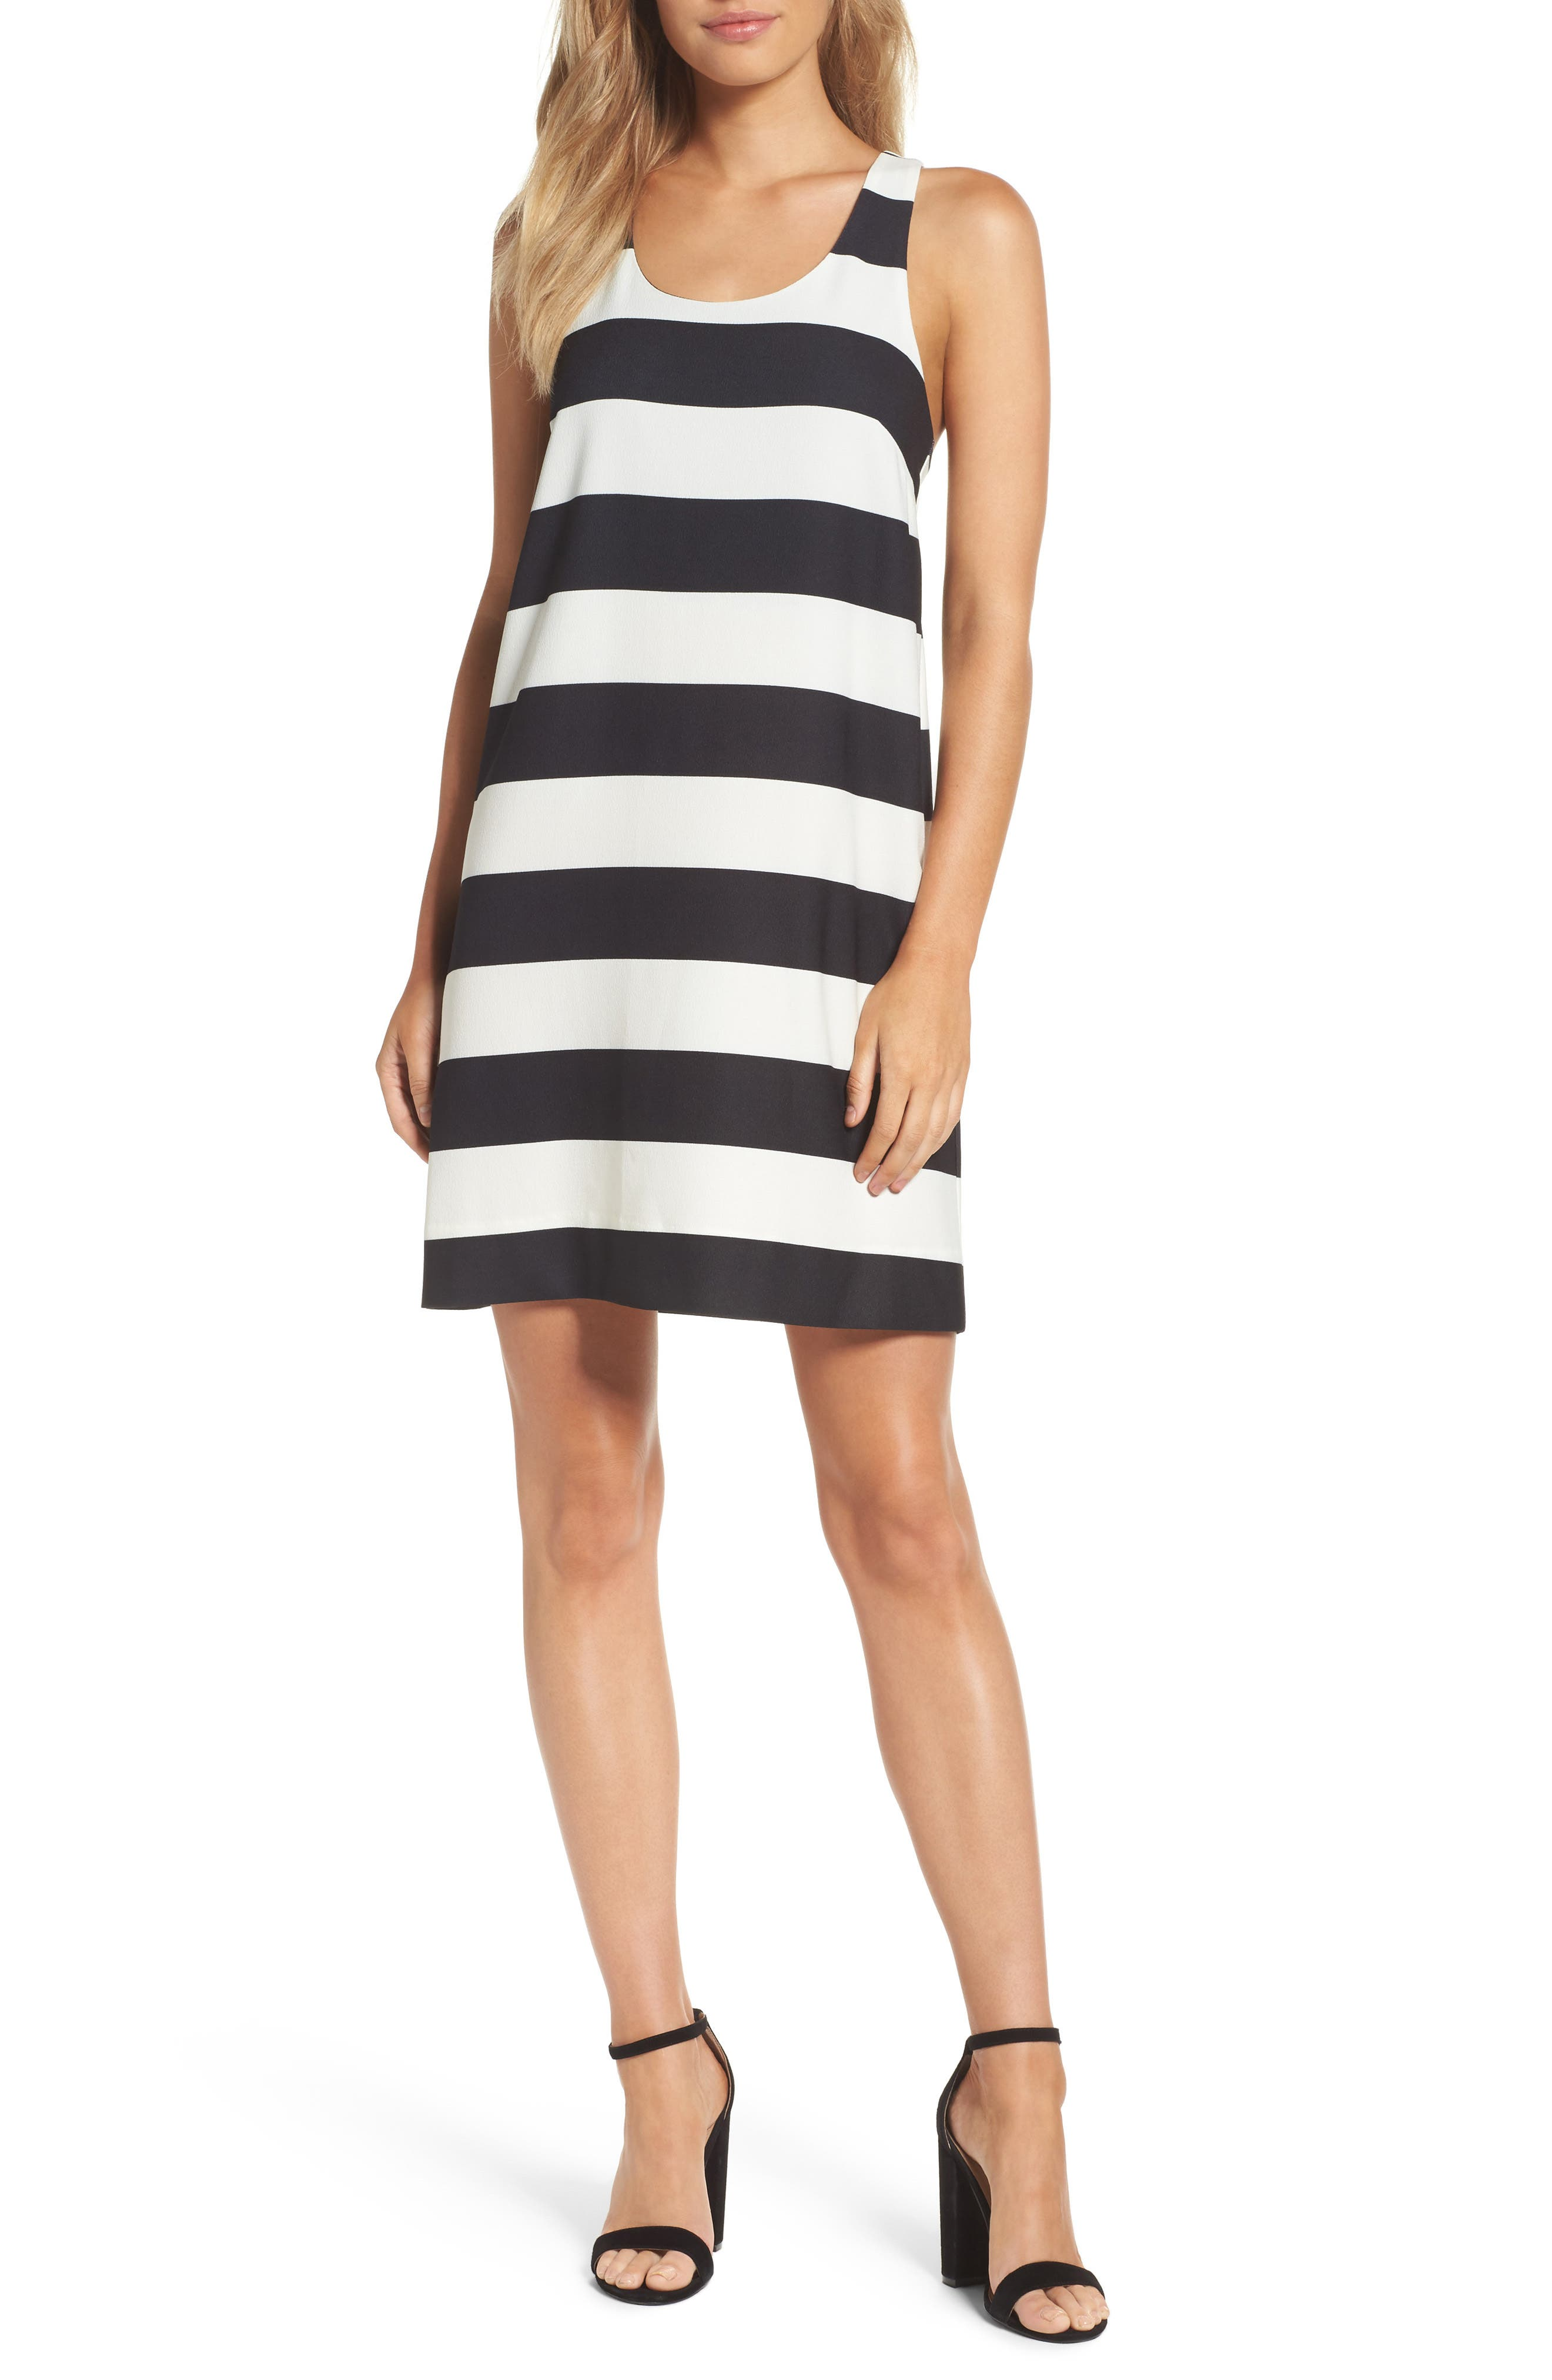 Felicity & Coco Sandy A-Line Dress (Nordstrom Exclusive)